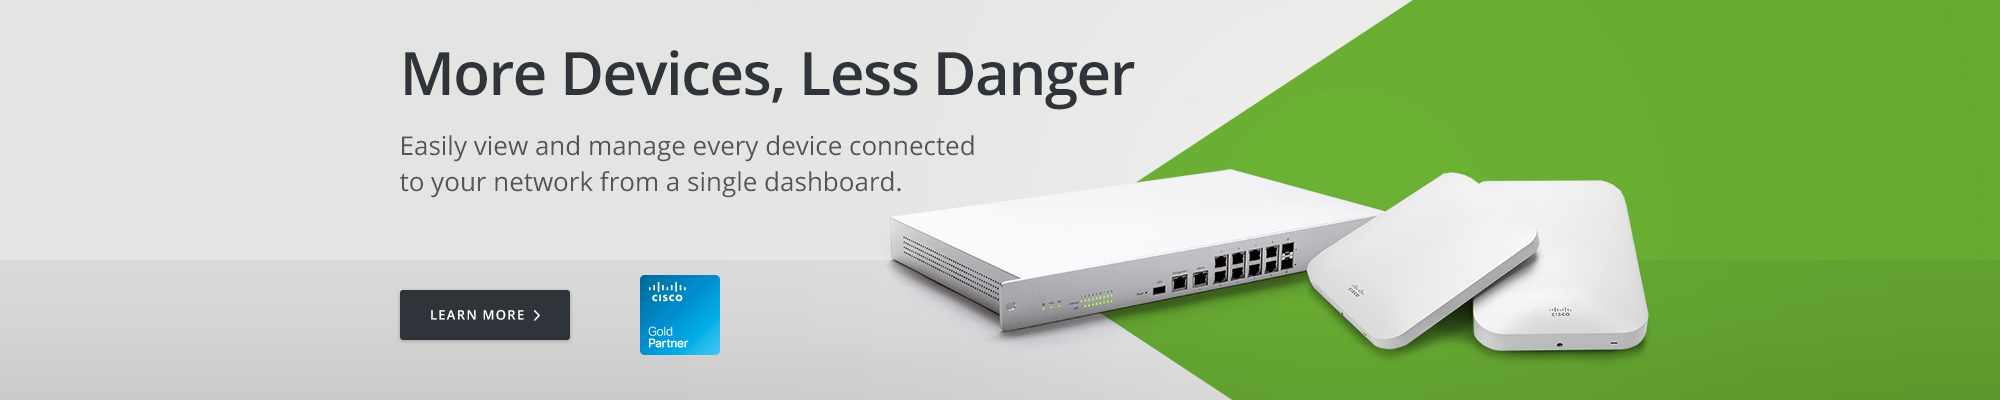 Cisco Meraki: Easily view and manage every device connected to your network from a single dashboard.